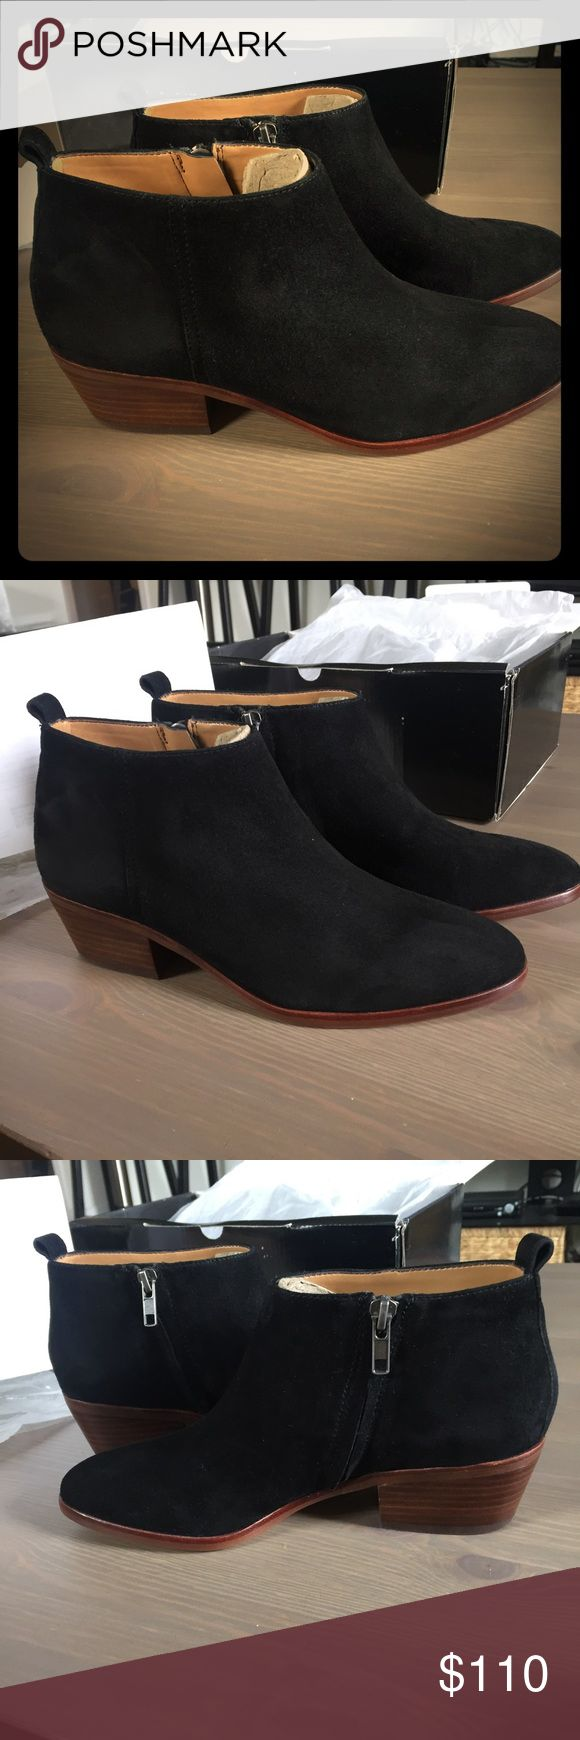 NWT J Crew Factory black suede booties Brand new never worn black suede sawyer ankle boots from J Crew Factory. Size is 7.5 M. J. Crew Factory Shoes Ankle Boots & Booties